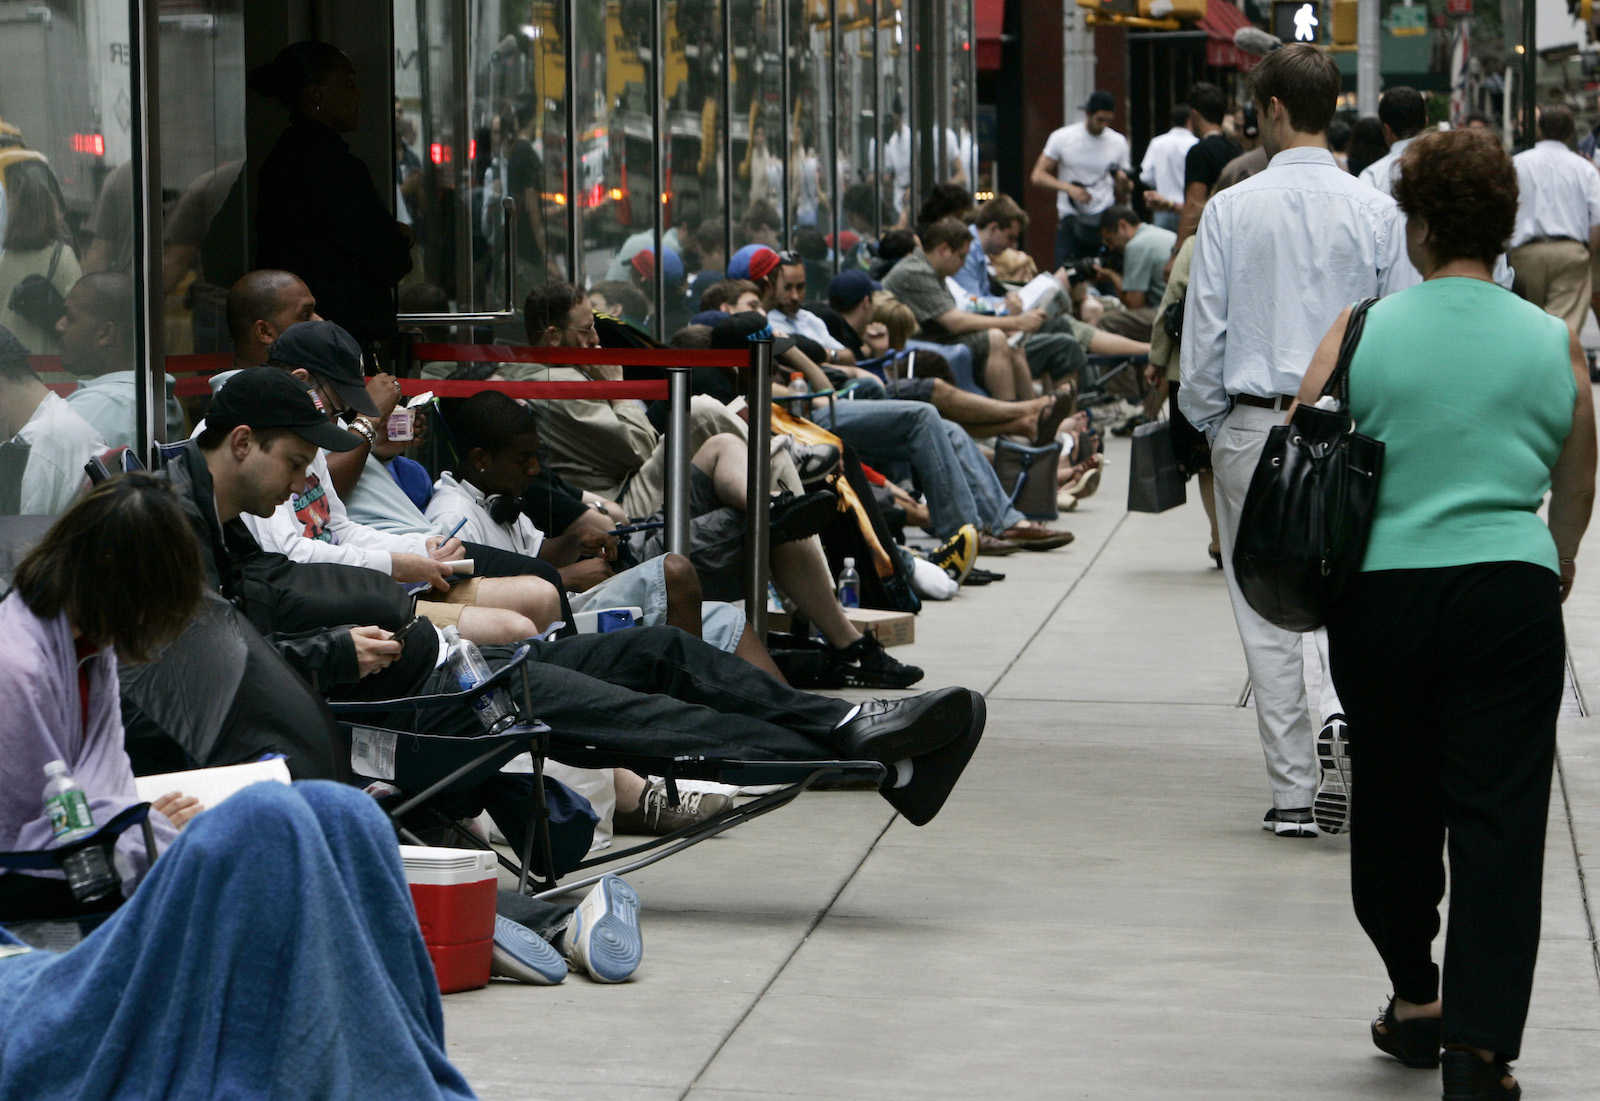 People line a sidewalk as they wait to buy the Apple iPhone near the Apple store on New York's 5th Avenue June 29, 2007. Hundreds lined up Friday outside the Apple store hours before the iPhone, a combination widescreen iPod, cellphone and pocket Internet device, went on sale at Apple's 164 stores and nearly 1,800 AT&T stores.